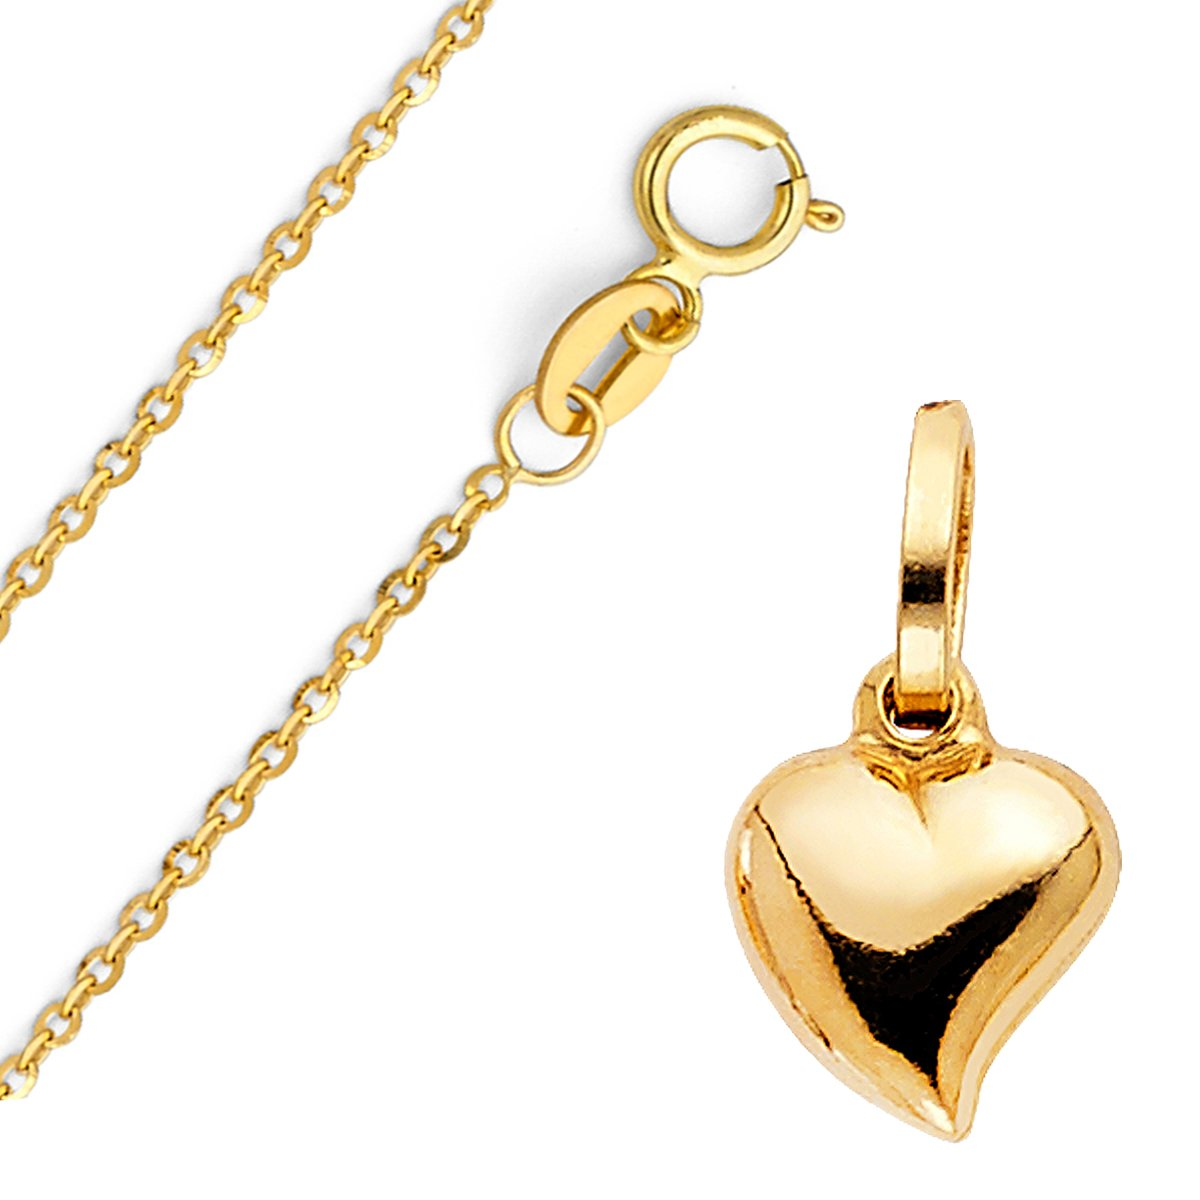 14k Yellow Gold Heart Locket Pendant - Comes with Rolo Cable Chain - High Polish Finished Fine Jewelry - Suitable for Men & Women for All Special Occasion, 22 inches, 11 x 10 mm